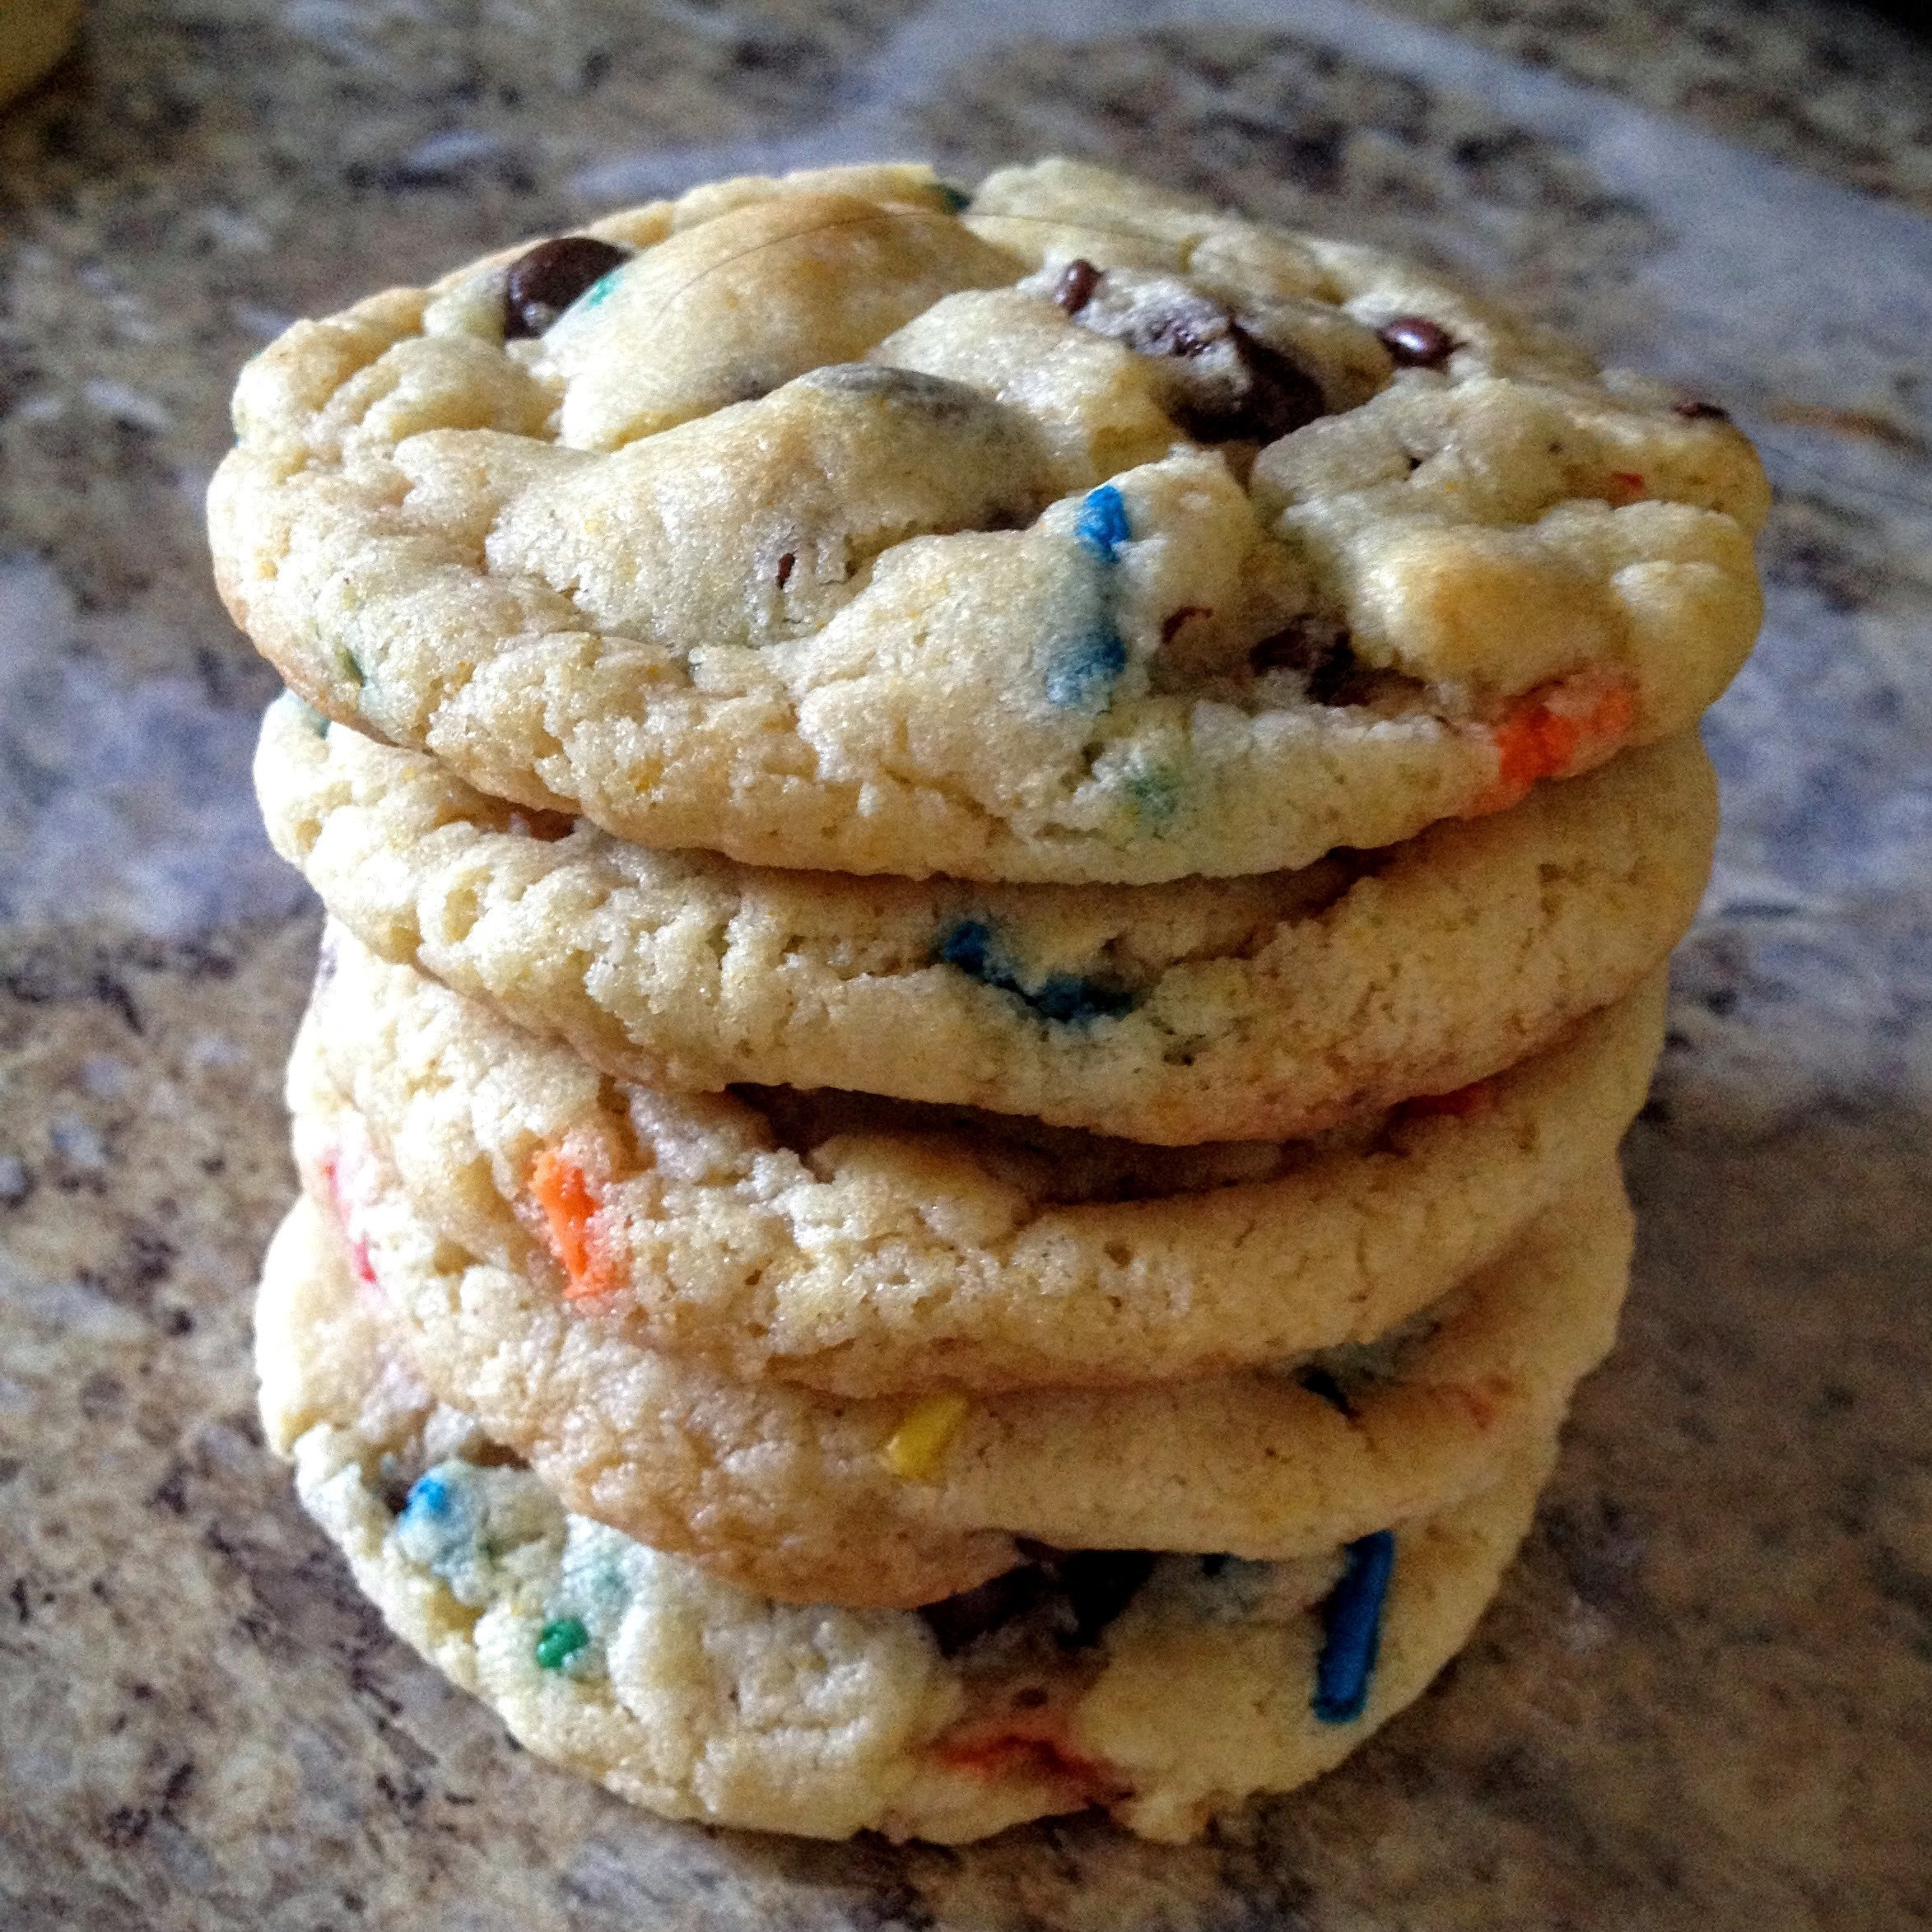 Cake Batter Cream Cheese Chocolate Chip Cookies